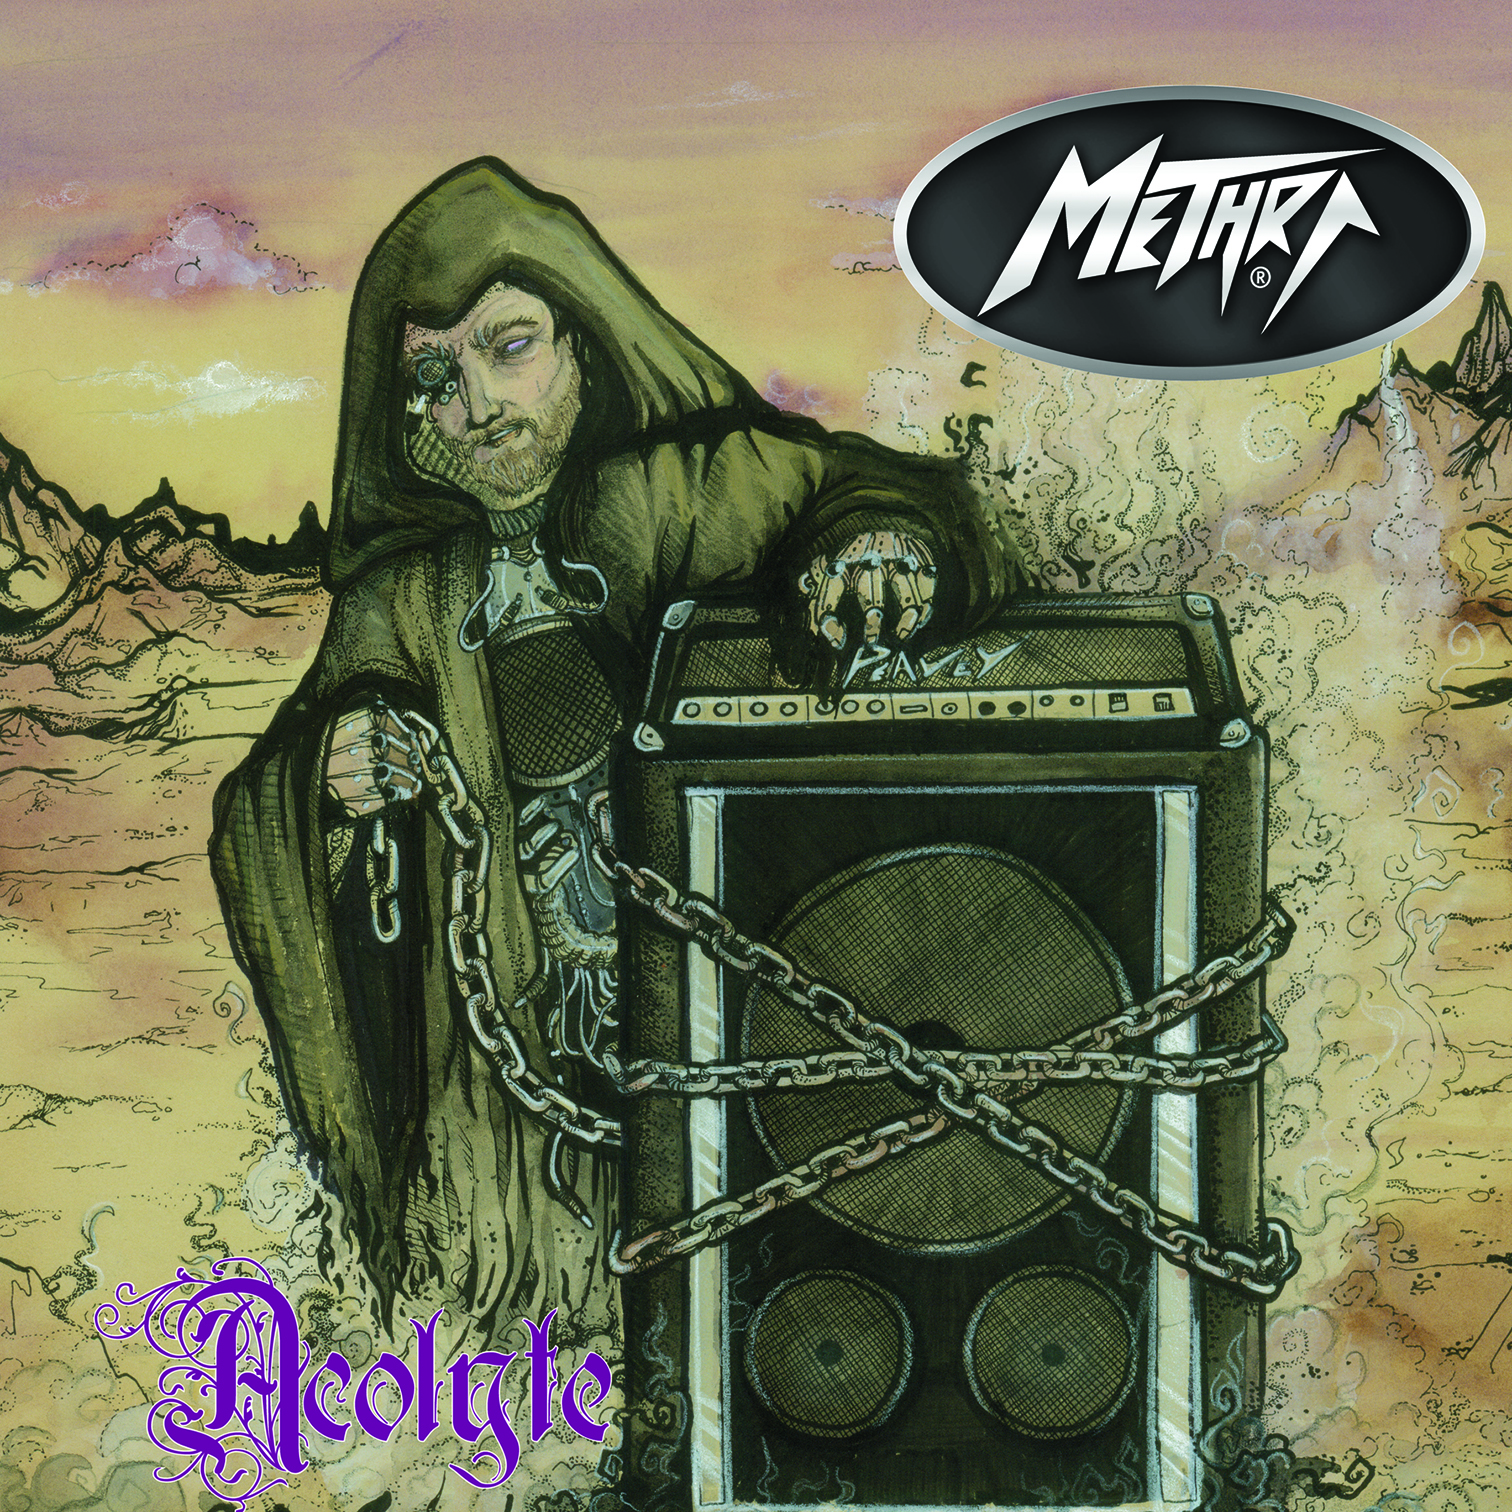 Methra_-_Acolyte_cover_web